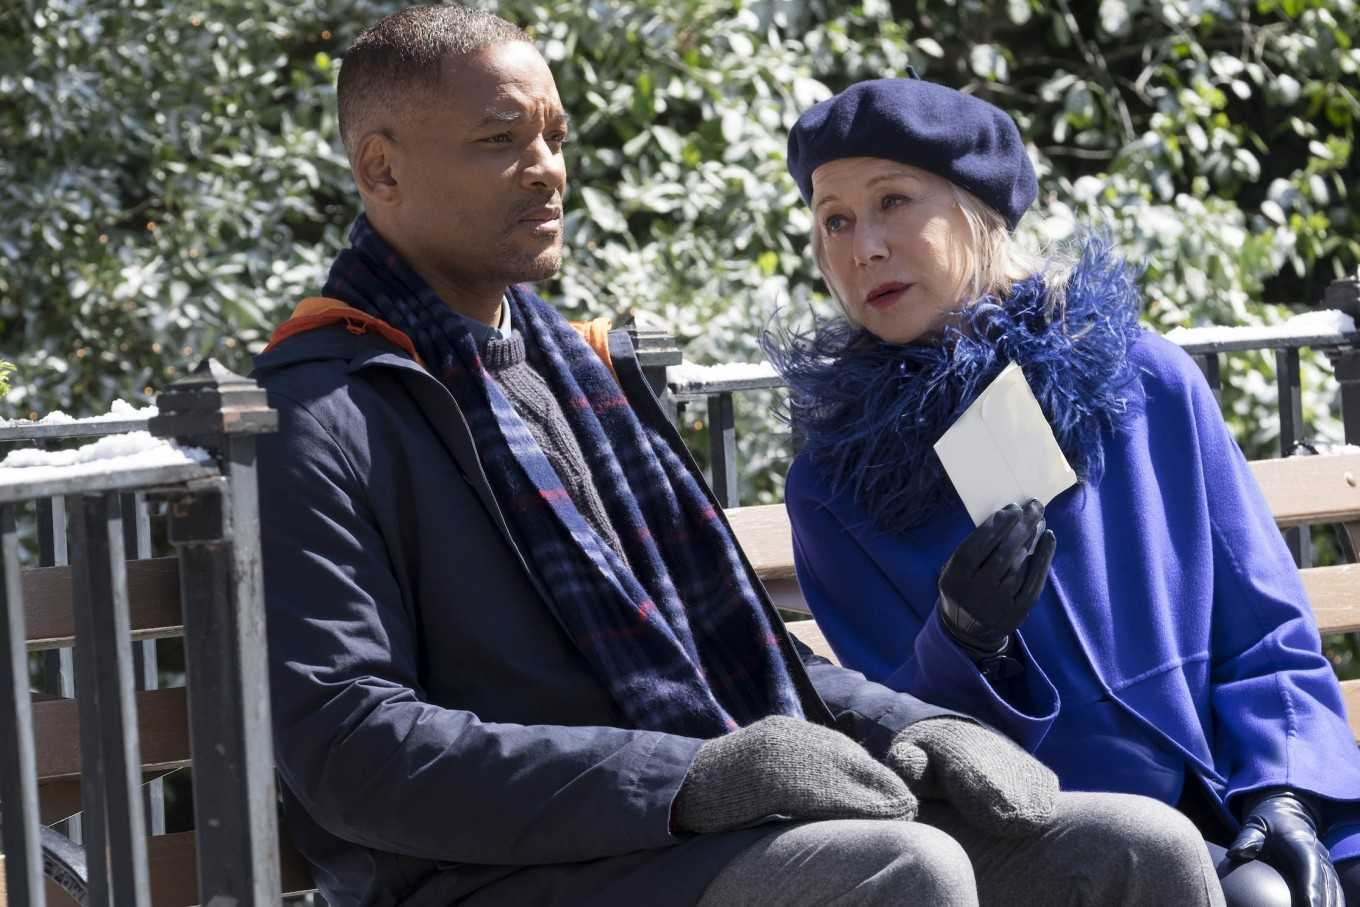 Will Smith with Helen Mirren as Brigitte in Collateral Beauty (2016)